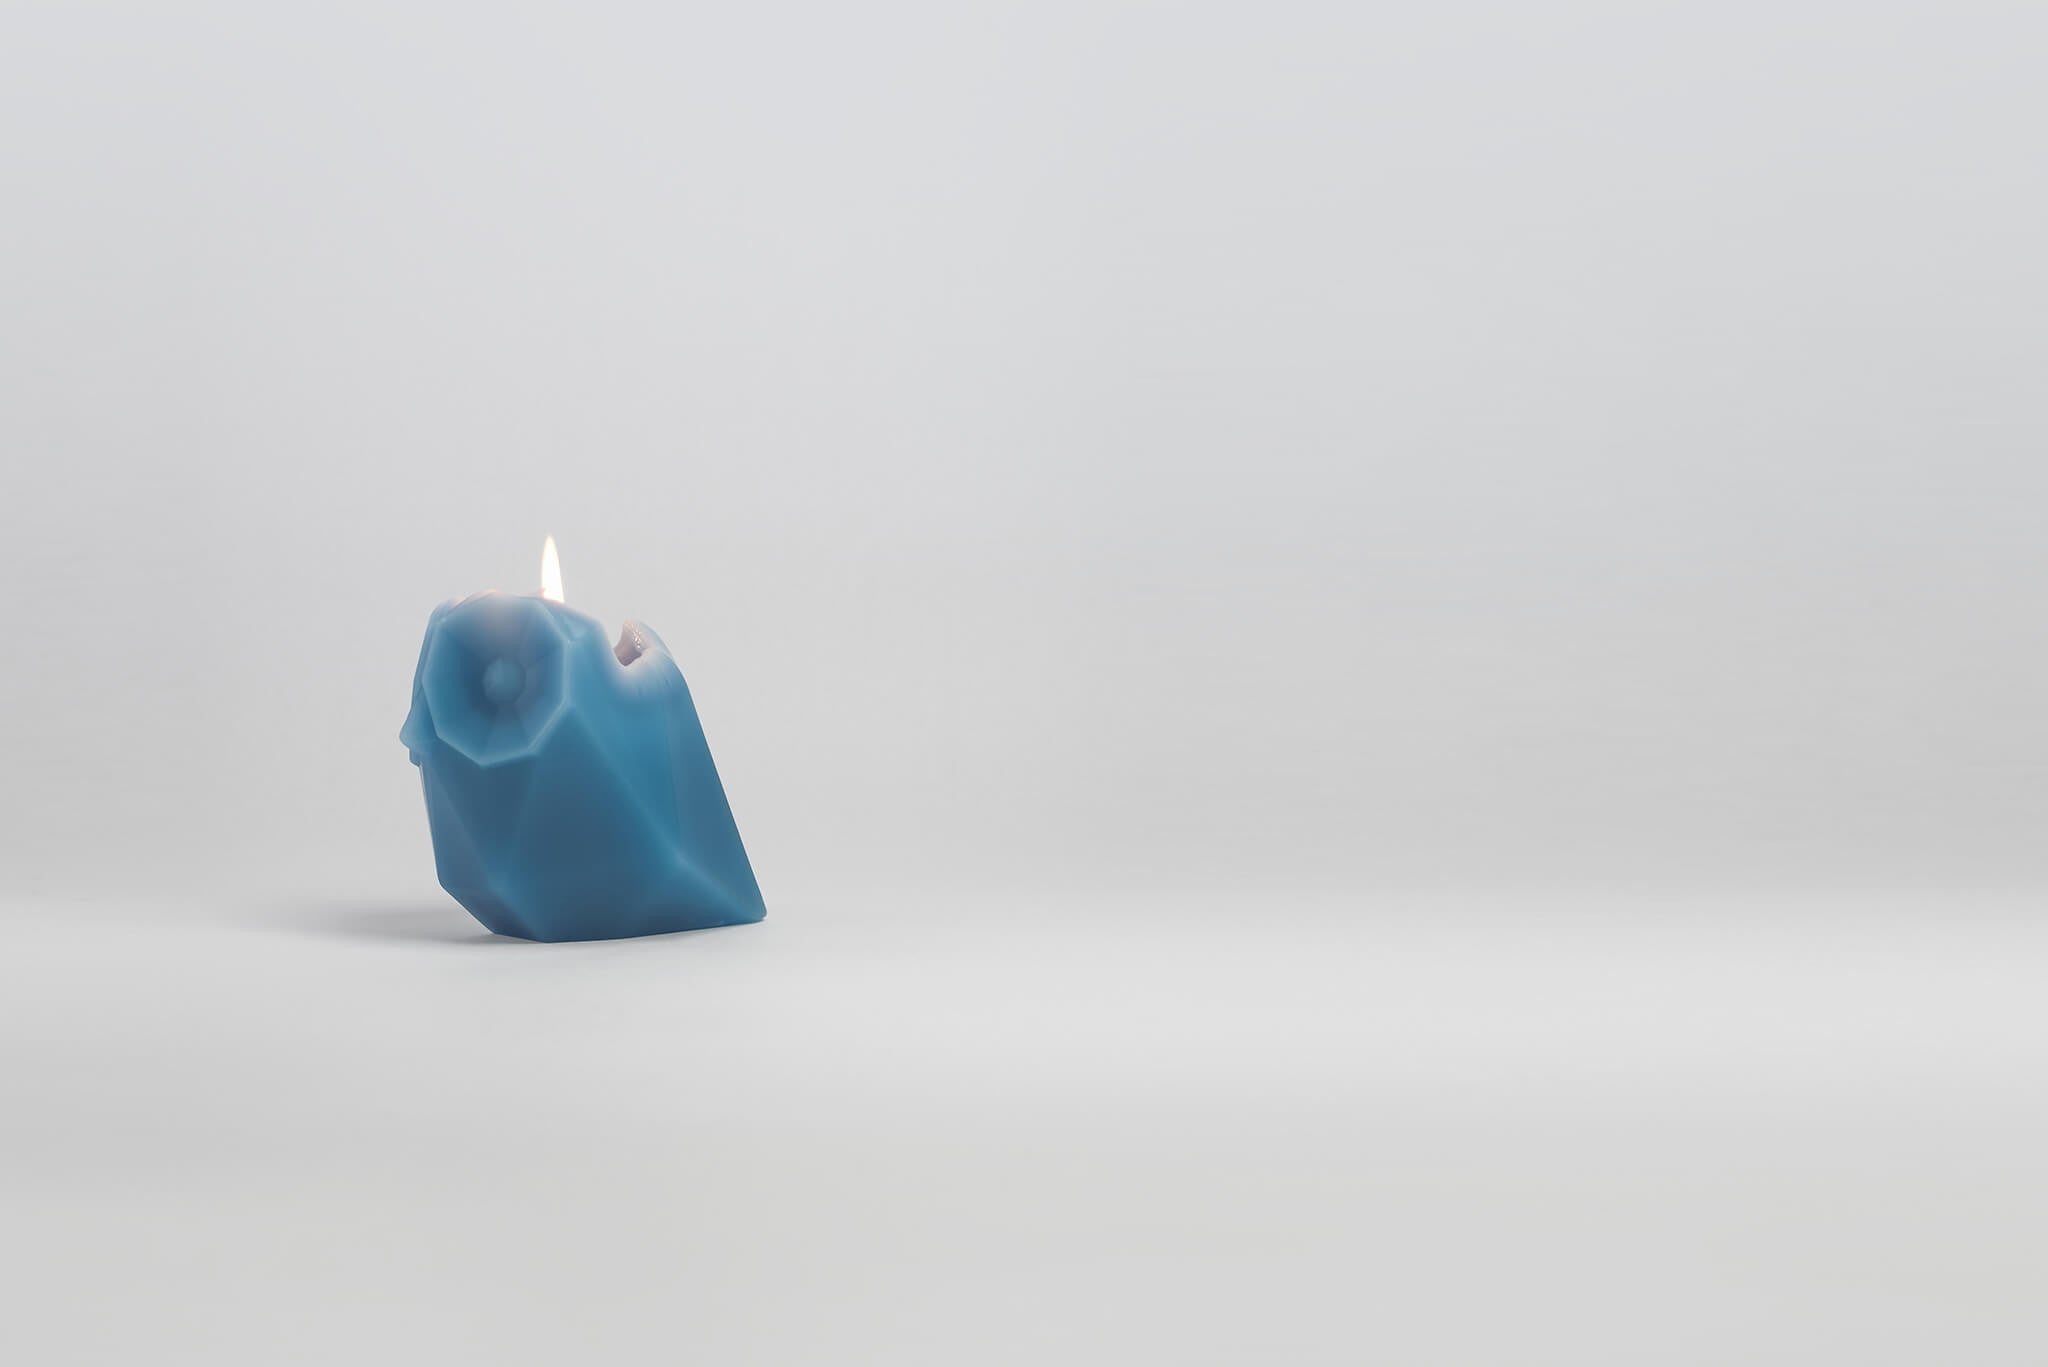 Side view of melting blue owl shaped pyropet candle.